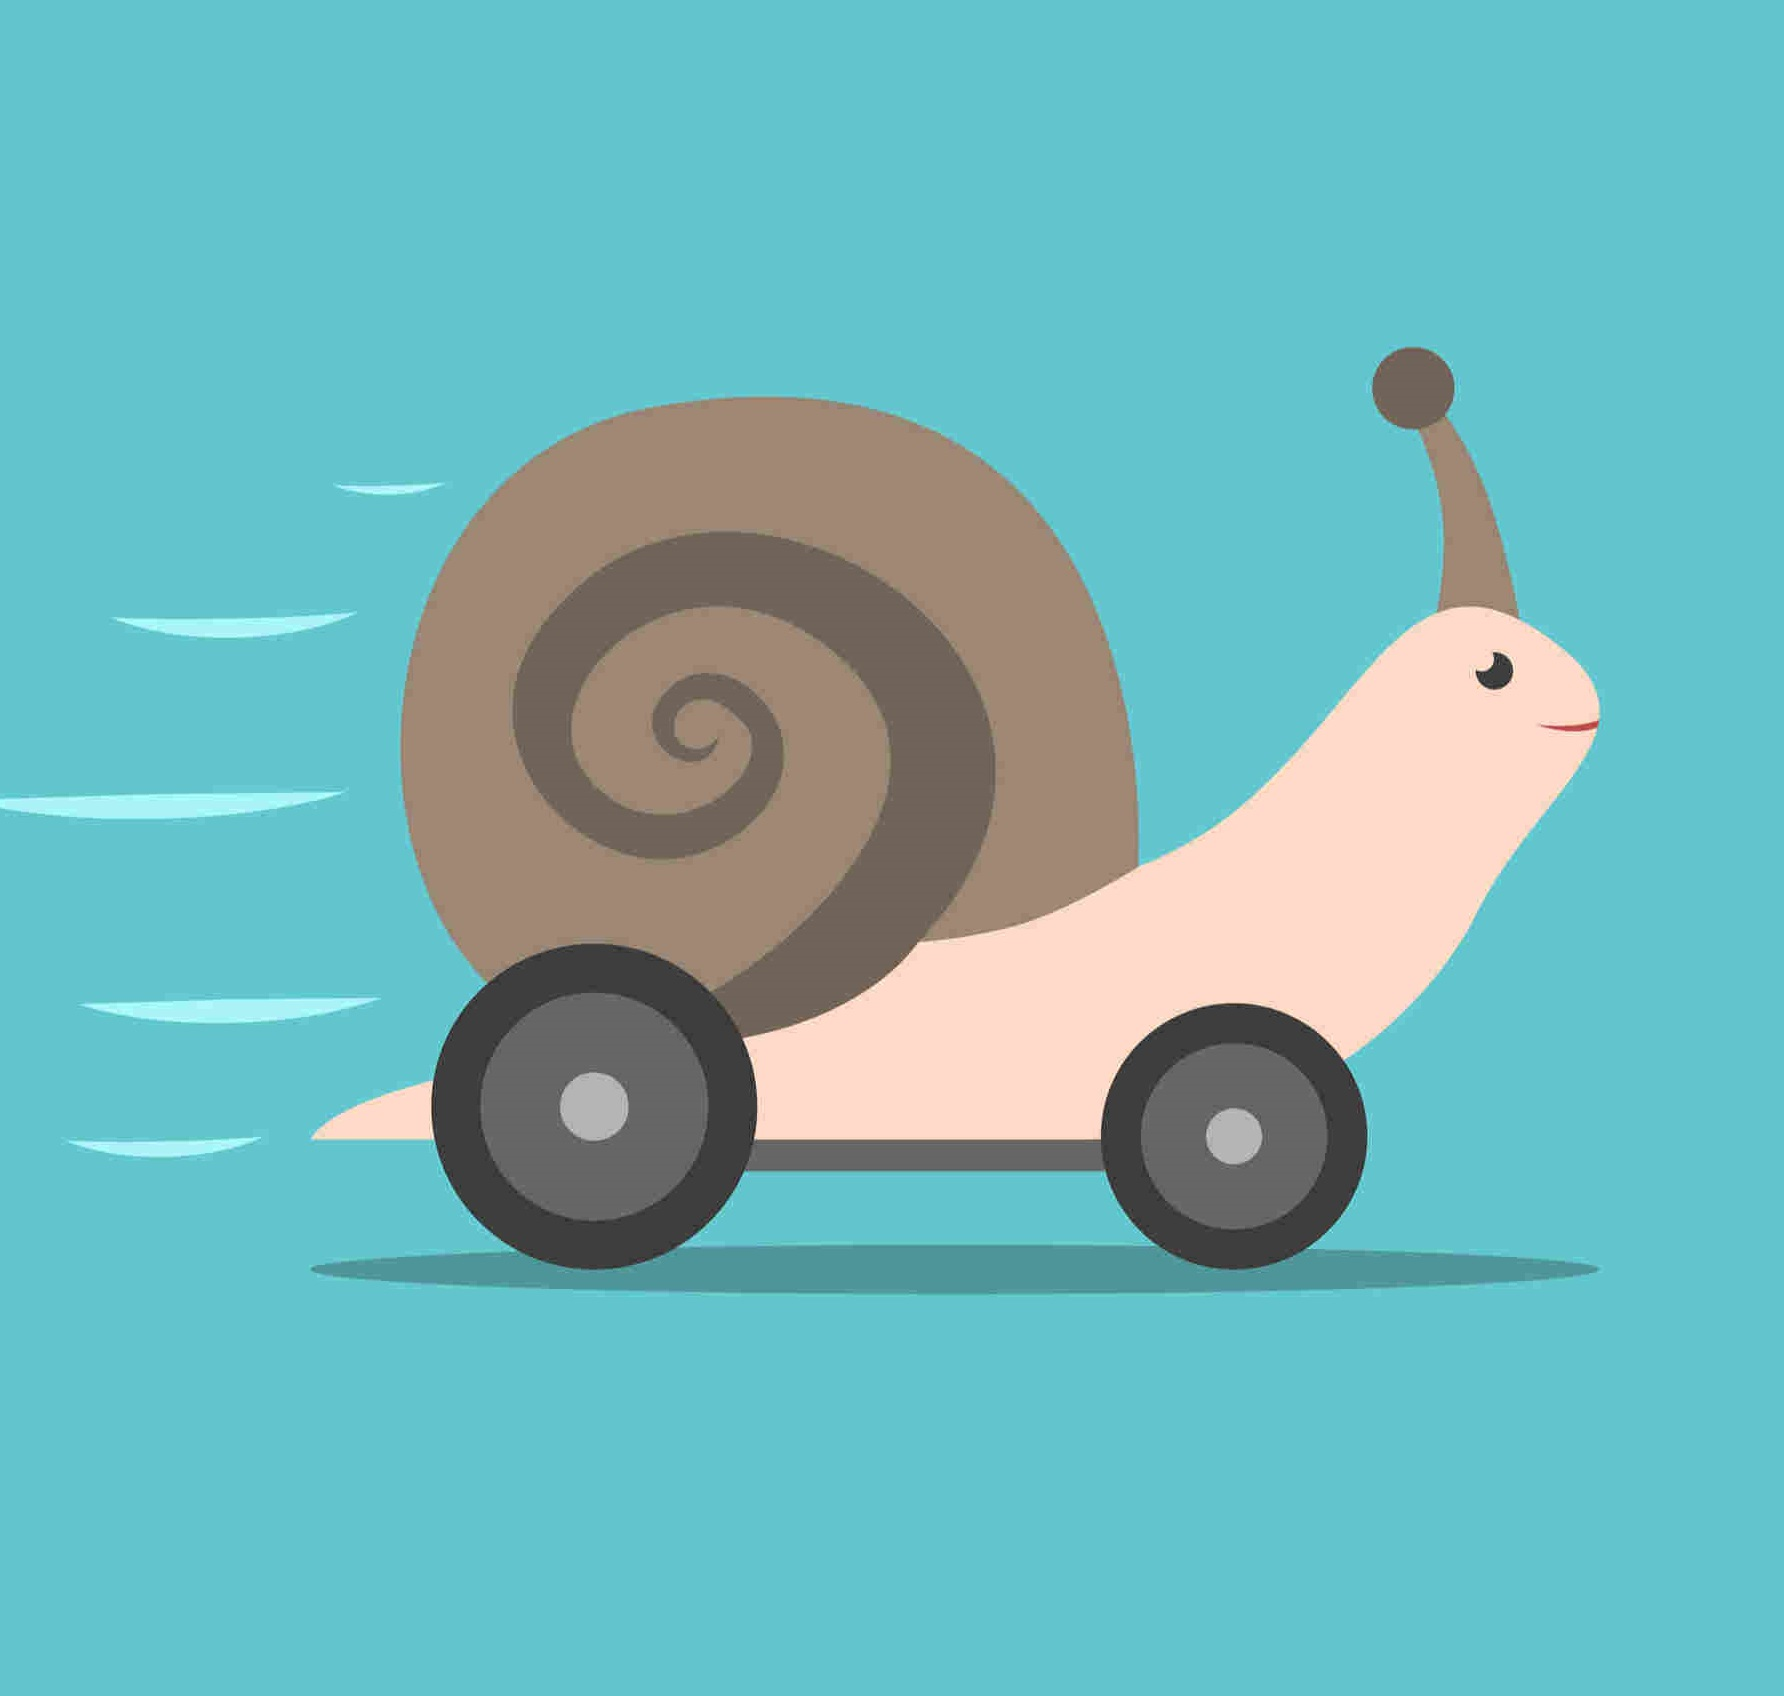 speeding snail on wheels graphic